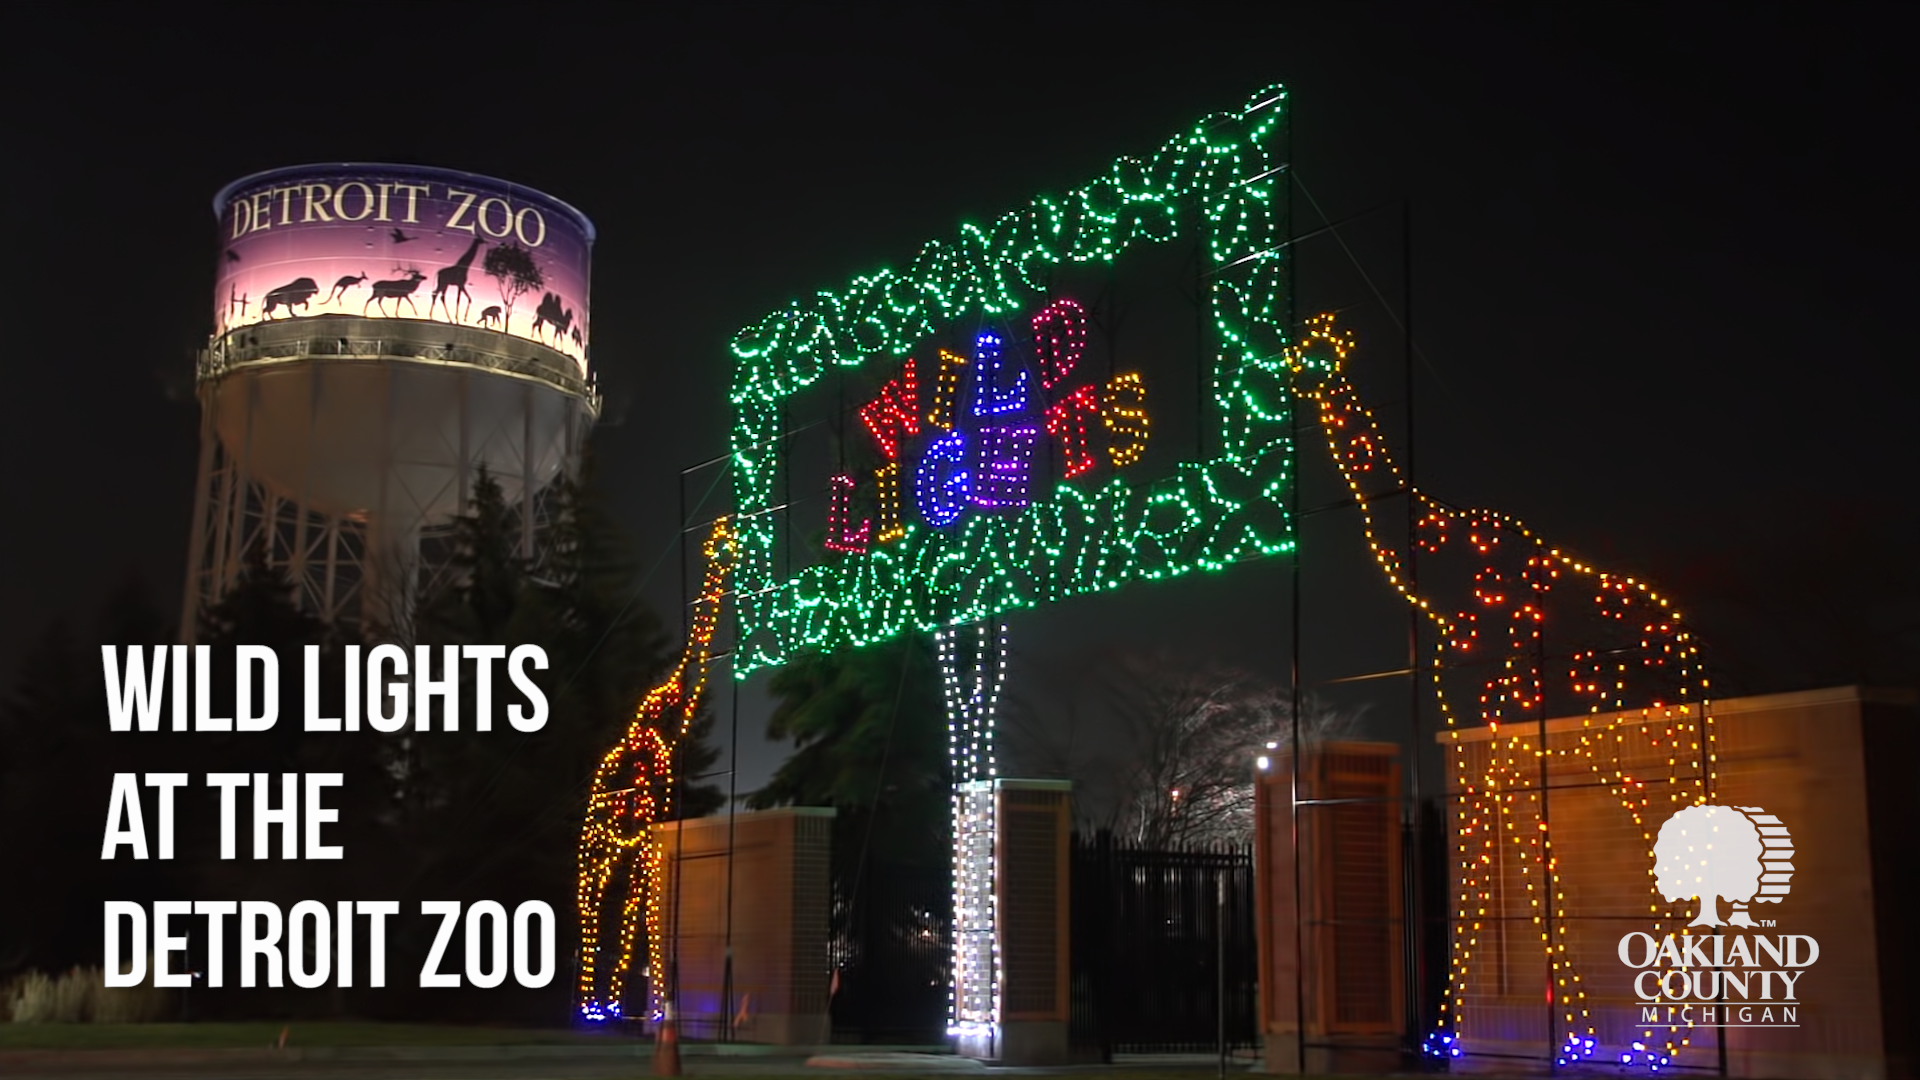 Twinkling lights illuminate two giraffe stands at the entrance of the Detroit Zoo.